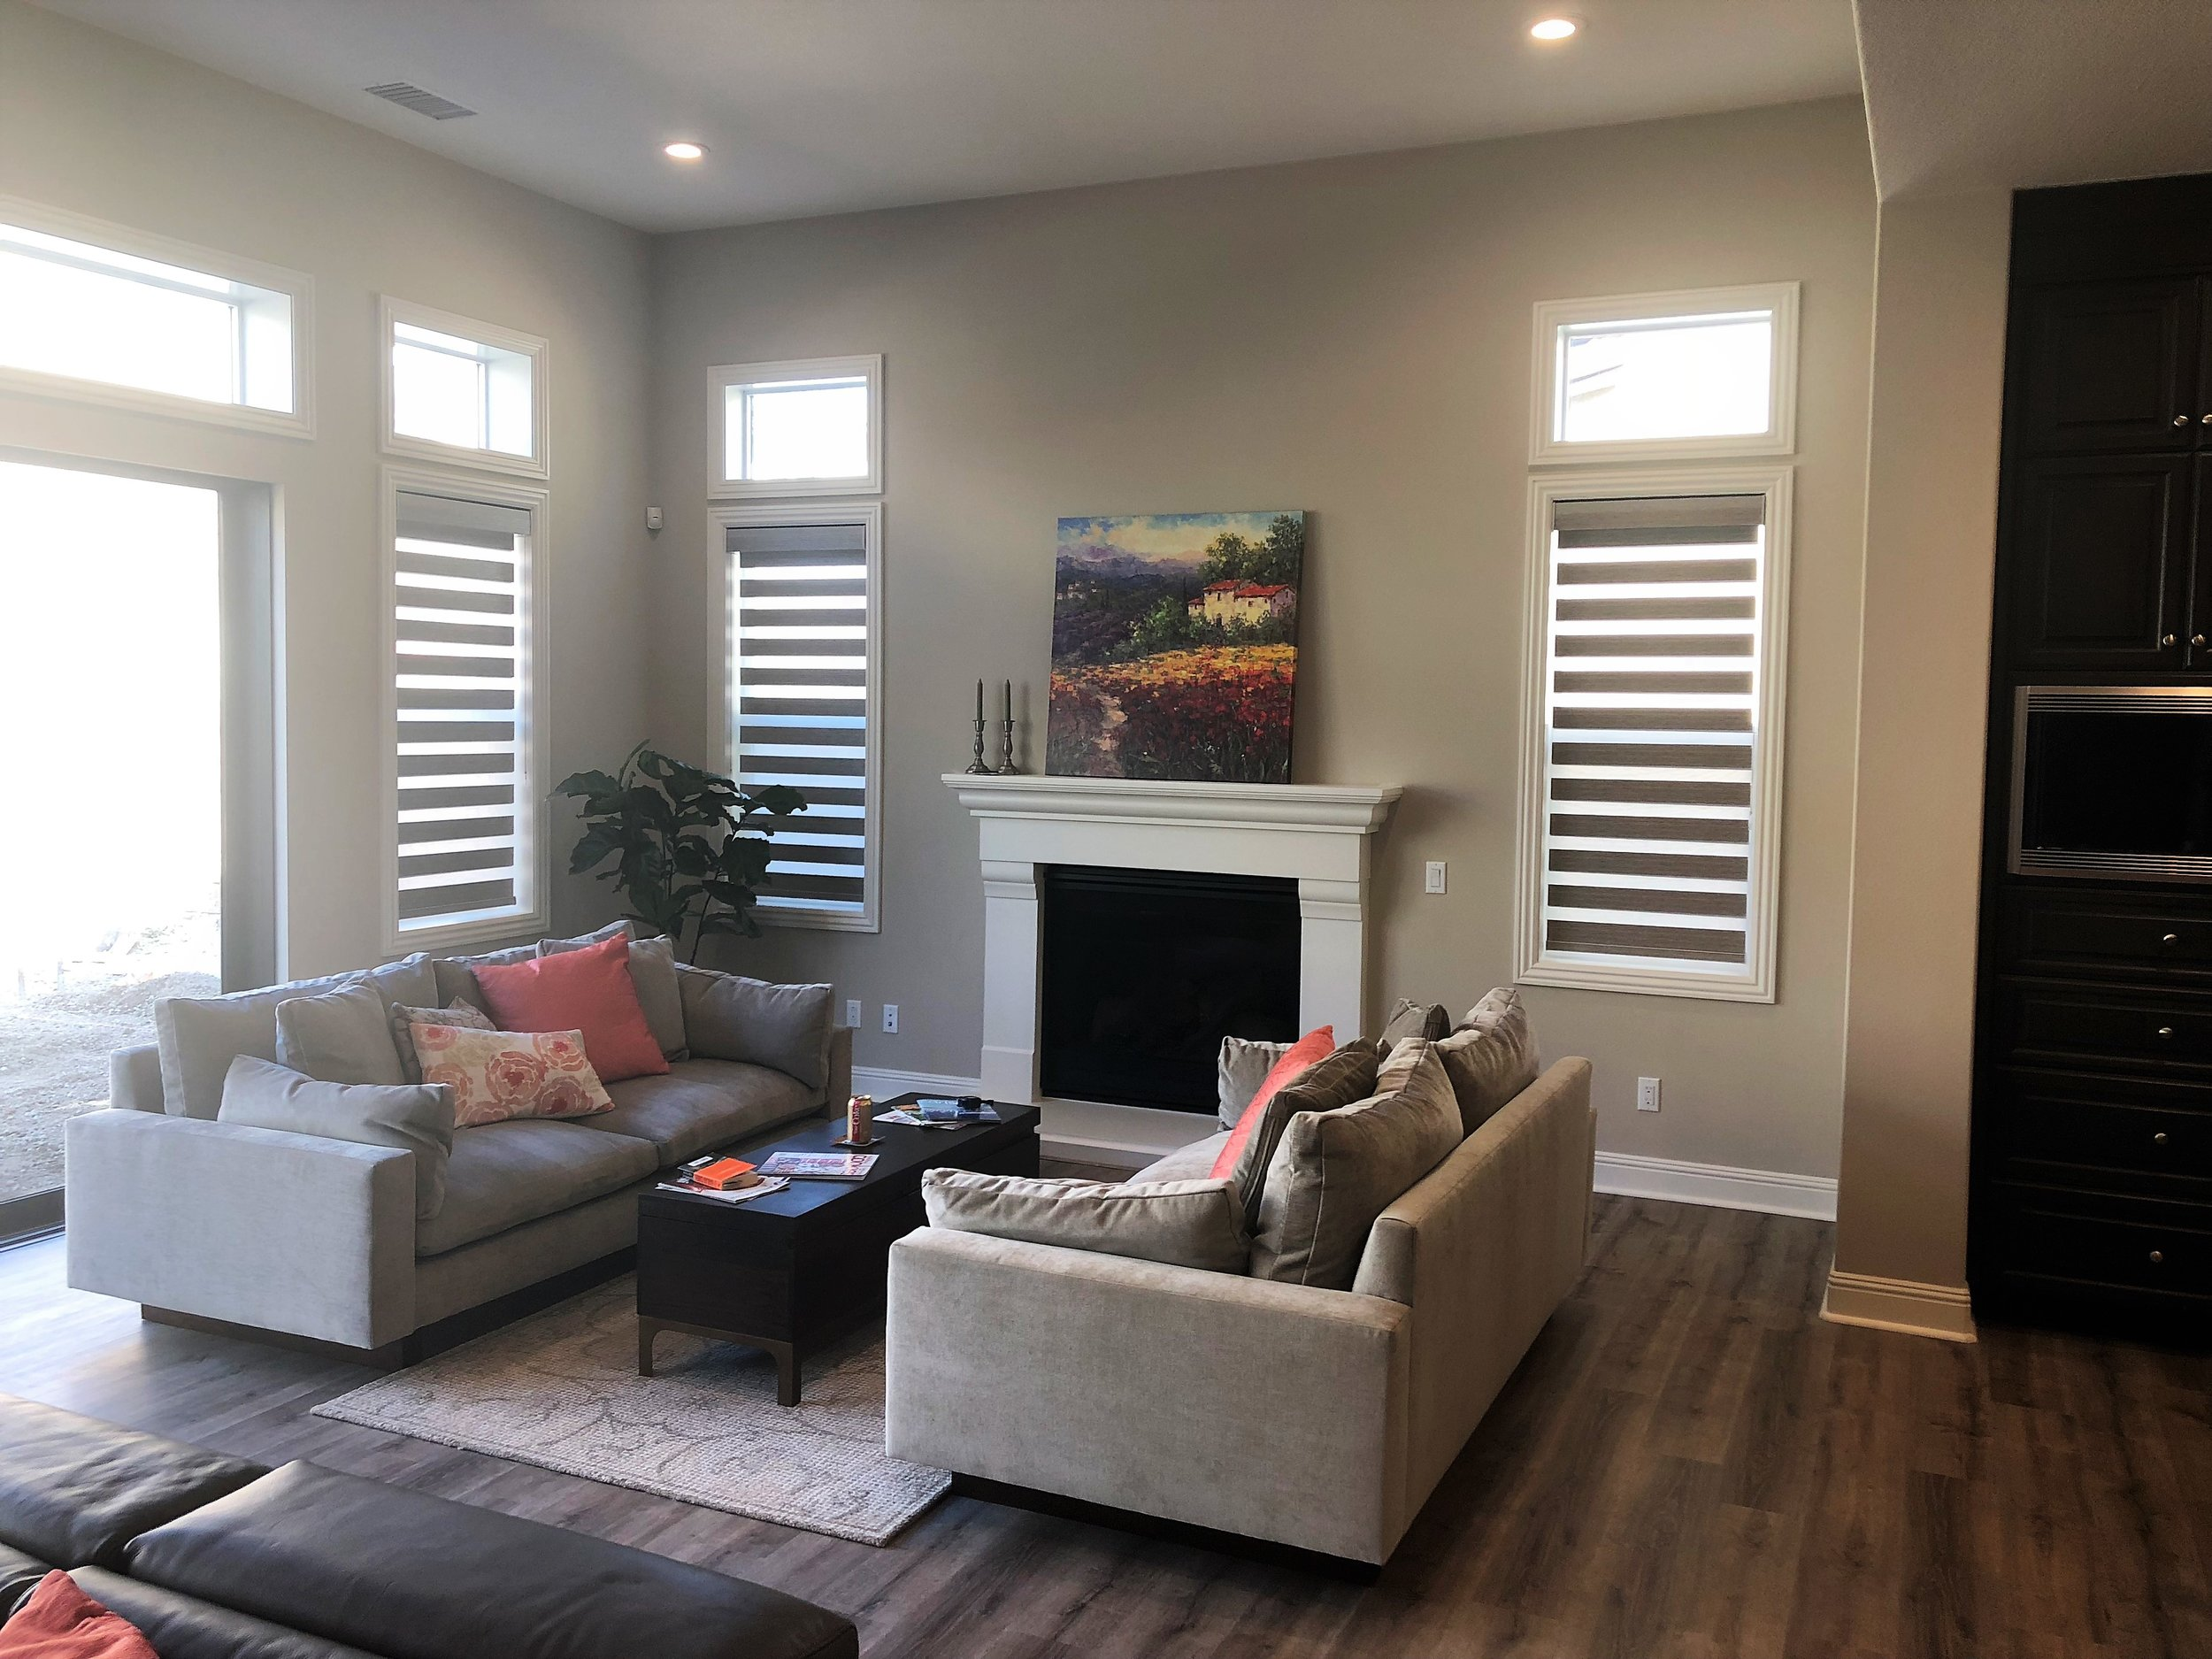 Gallery of Custom Blinds, Shutters and Shades in Carlsbad, California (CA) like Cellular in Living Rooms